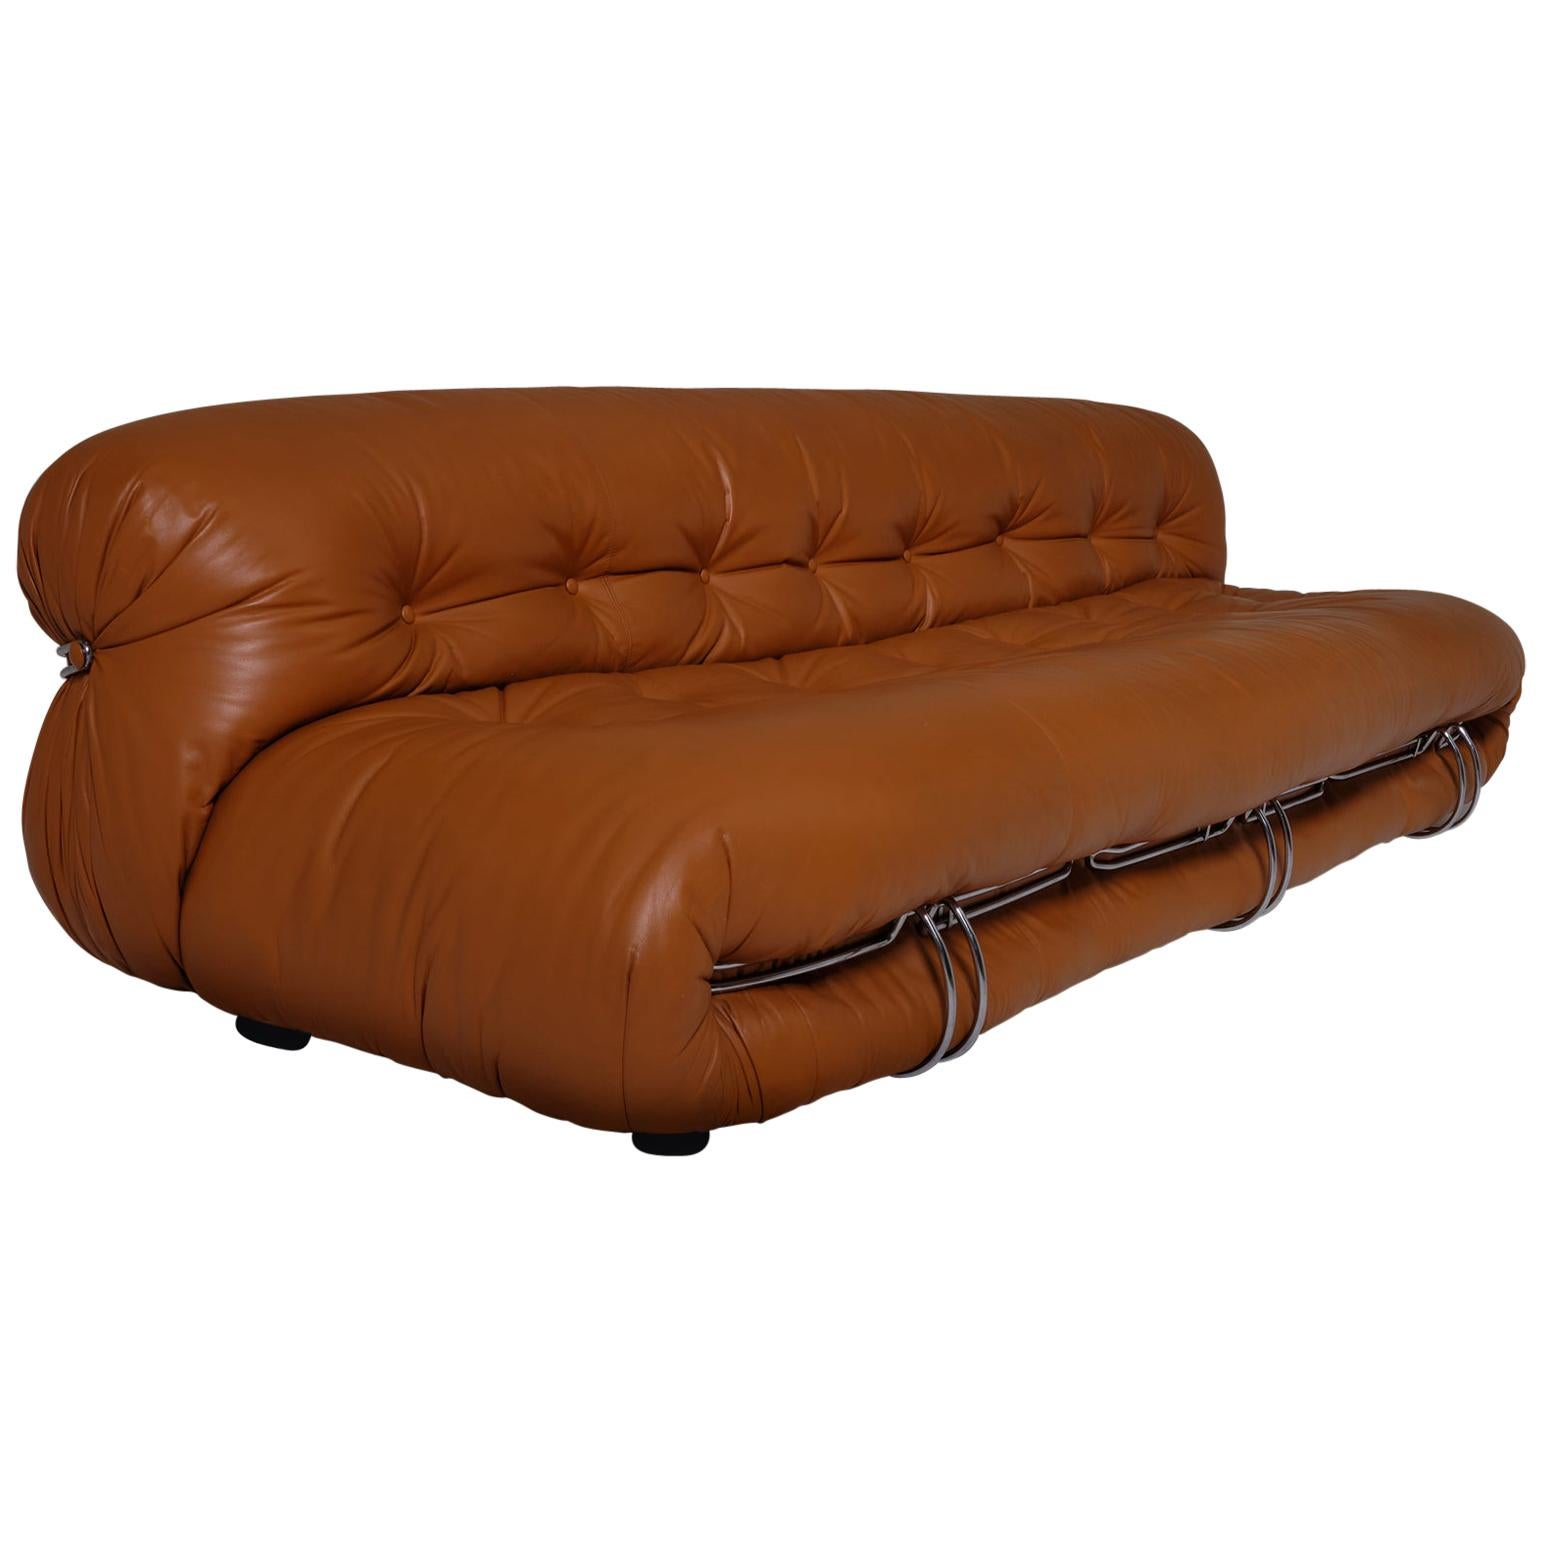 Soriana Three-Seat Sofa in Cognac Leather by Afra & Tobia Scarpa, Italy, 1969